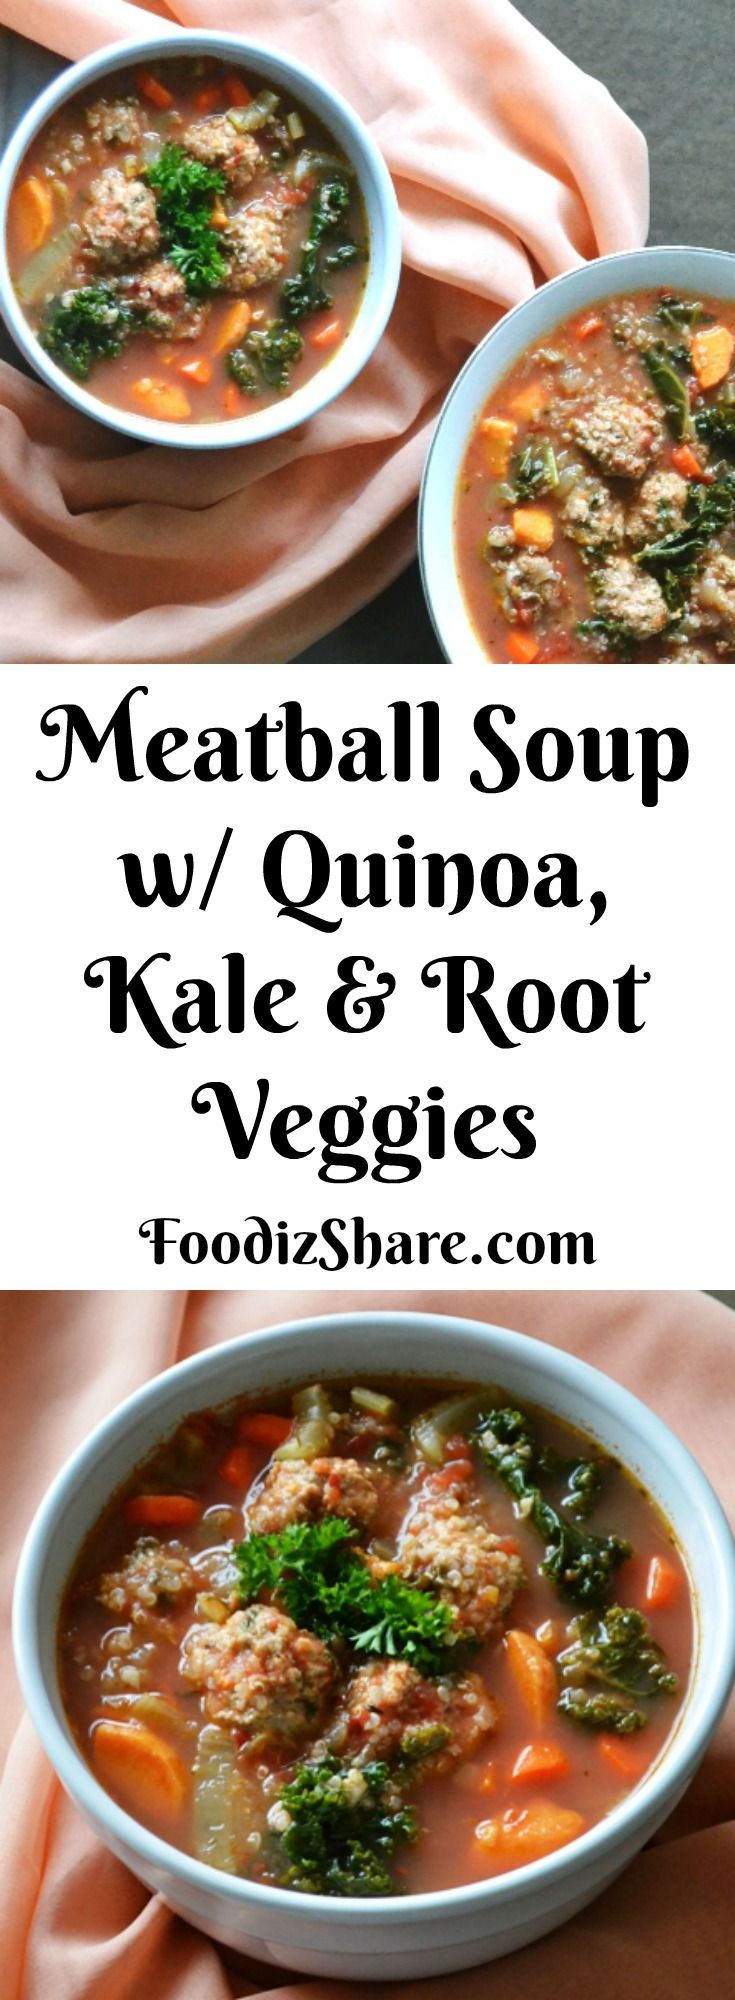 A #healthy & hearty #meatballs #soup made with ground #chicken , #quinoa , #kale and other vegetables making it #delicious as well as nutritious. #meat #vegetables #comfortfood #healthyeating #easyrecipe #recipes #glutenfree #dairyfree